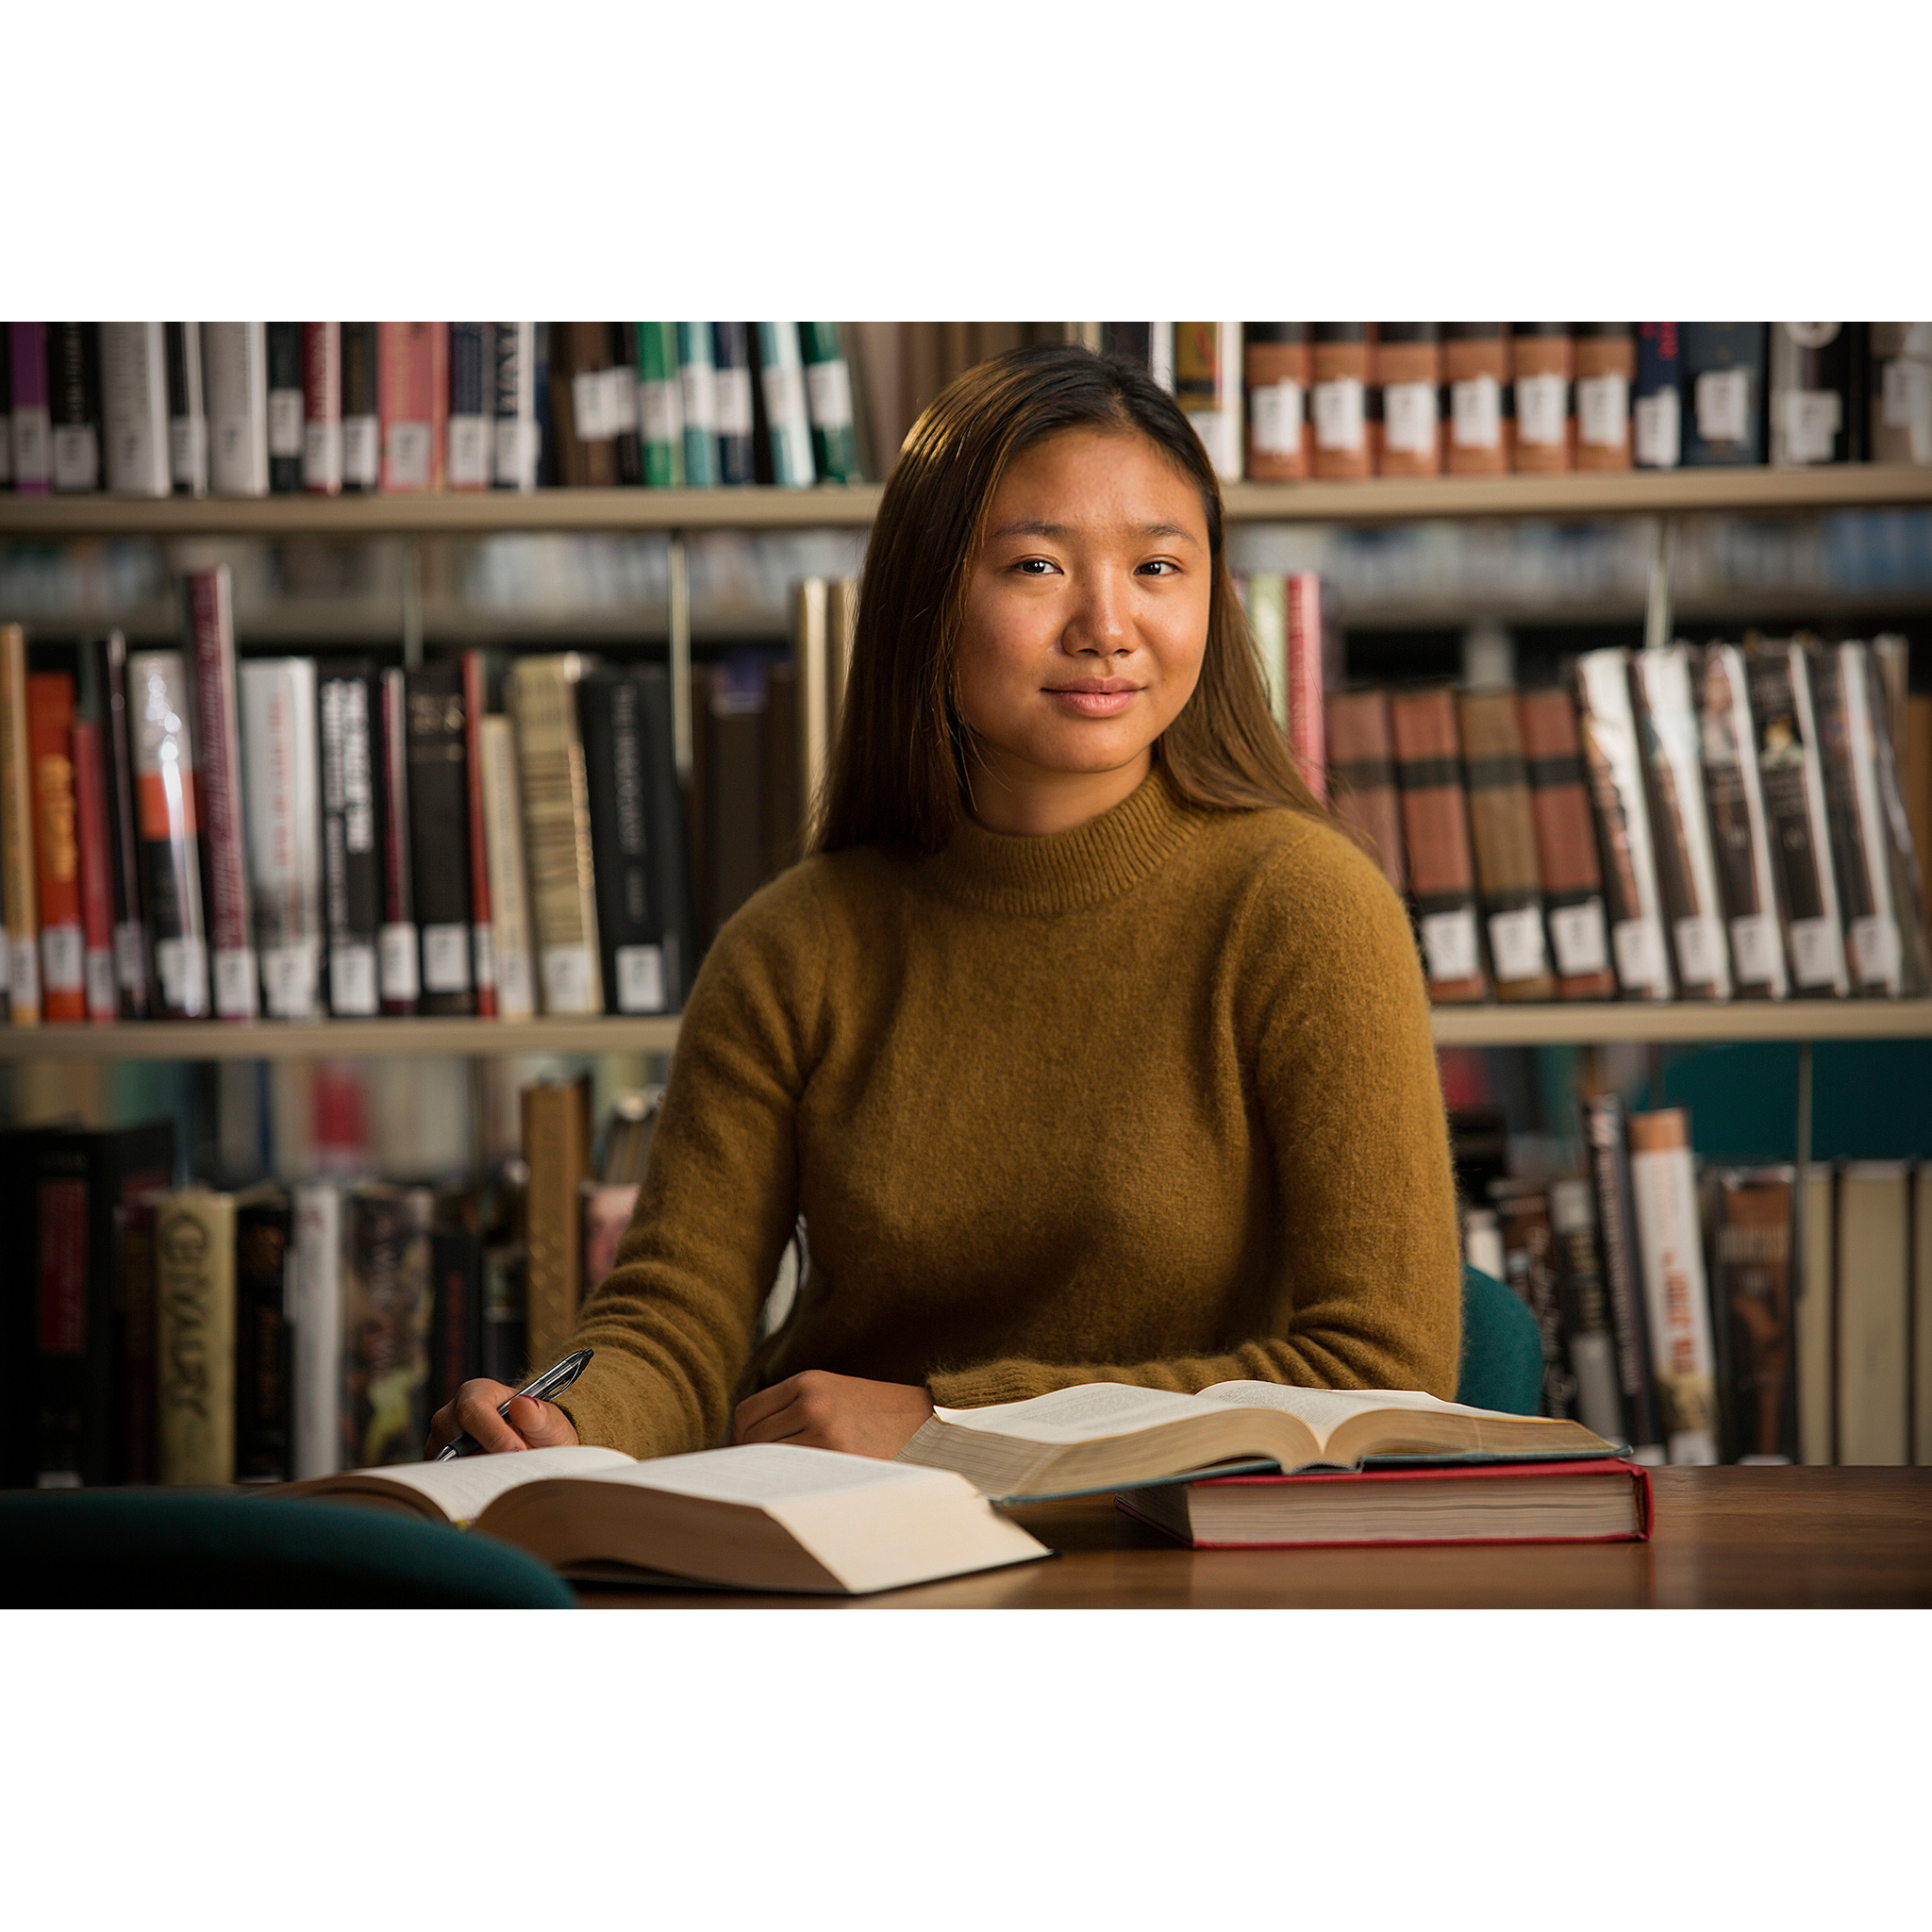 Female high school student with open books studying in library